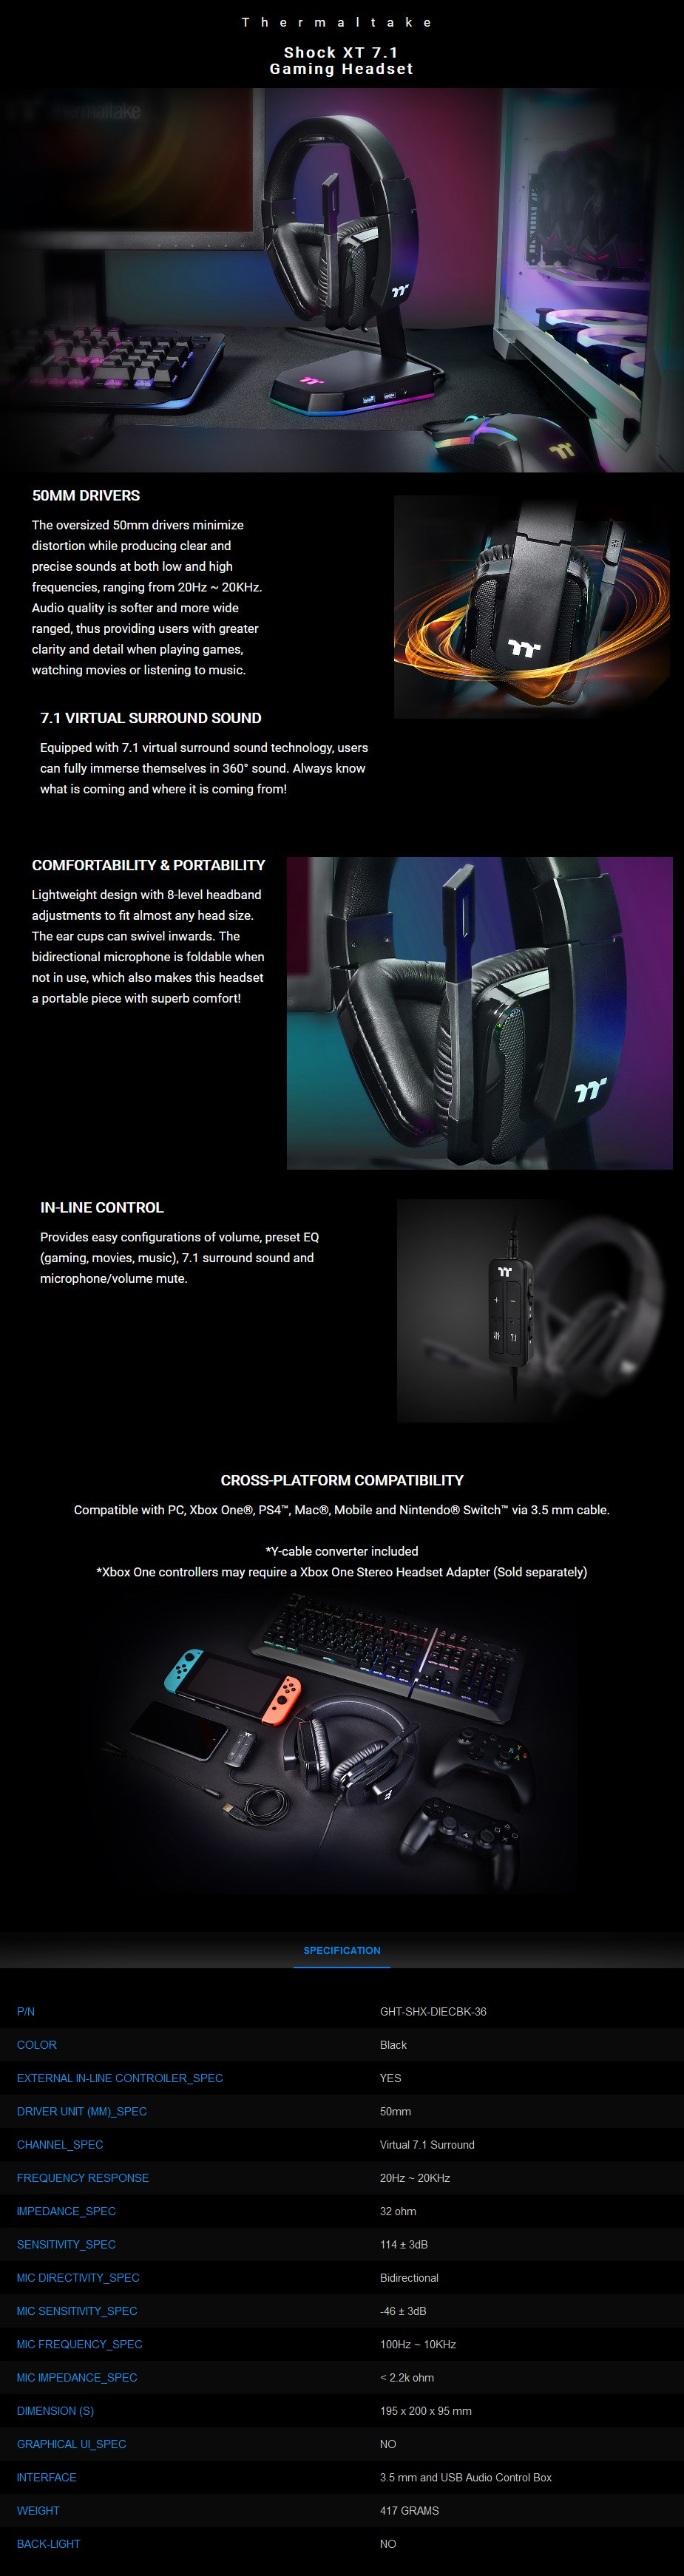 Thermaltake Gaming Shock XT 7.1 USB/3.5mm Gaming Headset - Overview 1